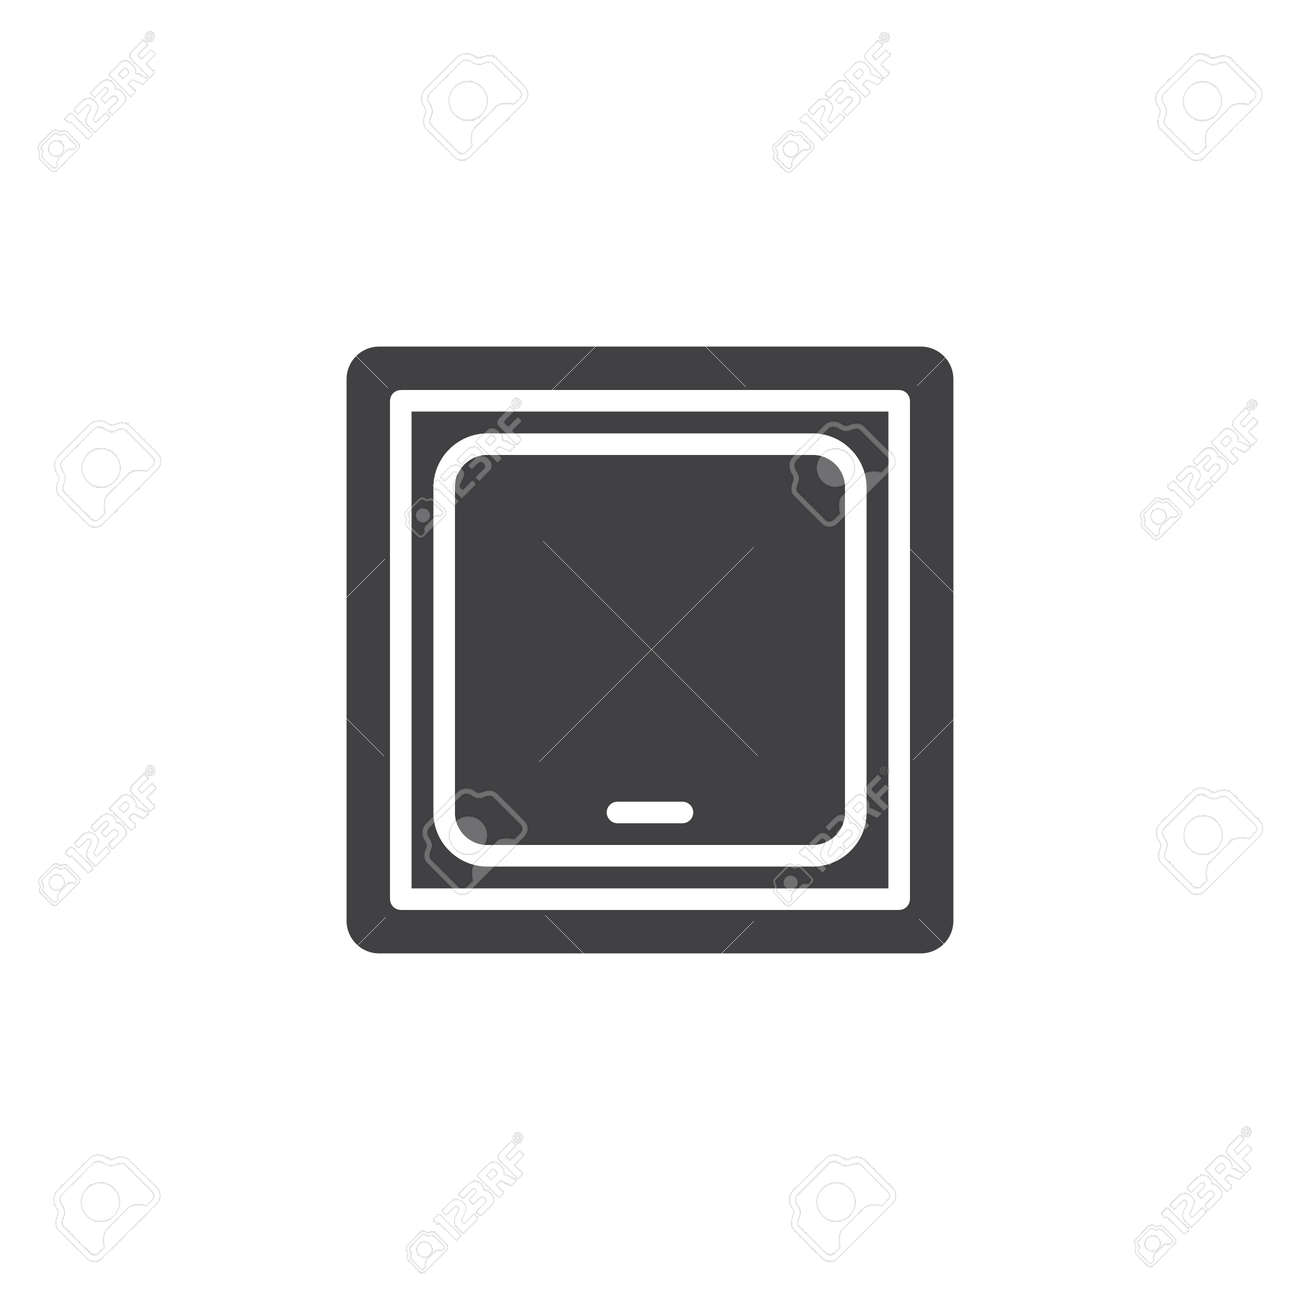 Light switch vector icon. filled flat sign for mobile concept and web on symbol for headlight, symbol for fuel tank, symbol for faucet, symbol for distributor, symbol for screw, symbol for remote control, symbol for condenser, symbol for button, symbol for cable, symbol for brake, symbol for light resistor, symbol for frame, symbol for grill, symbol for tachometer, symbol for hammer, symbol for fluorescent light, symbol for muffler, symbol for electric outlet, symbol for pilot light, symbol for wall light,